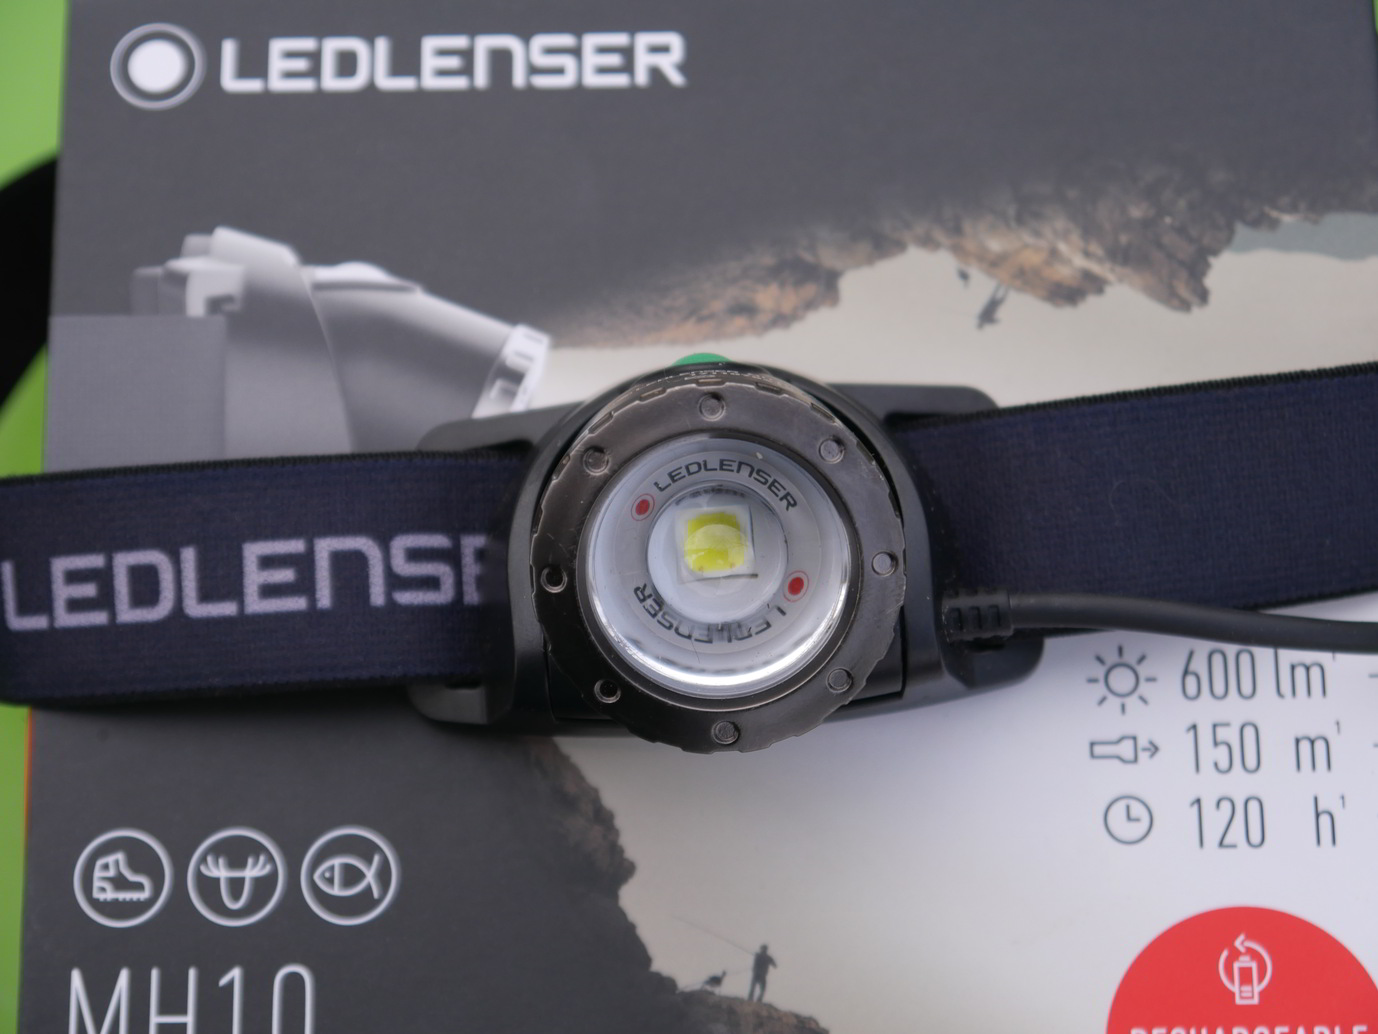 ledlenser mh10 led stirnlampe im test. Black Bedroom Furniture Sets. Home Design Ideas